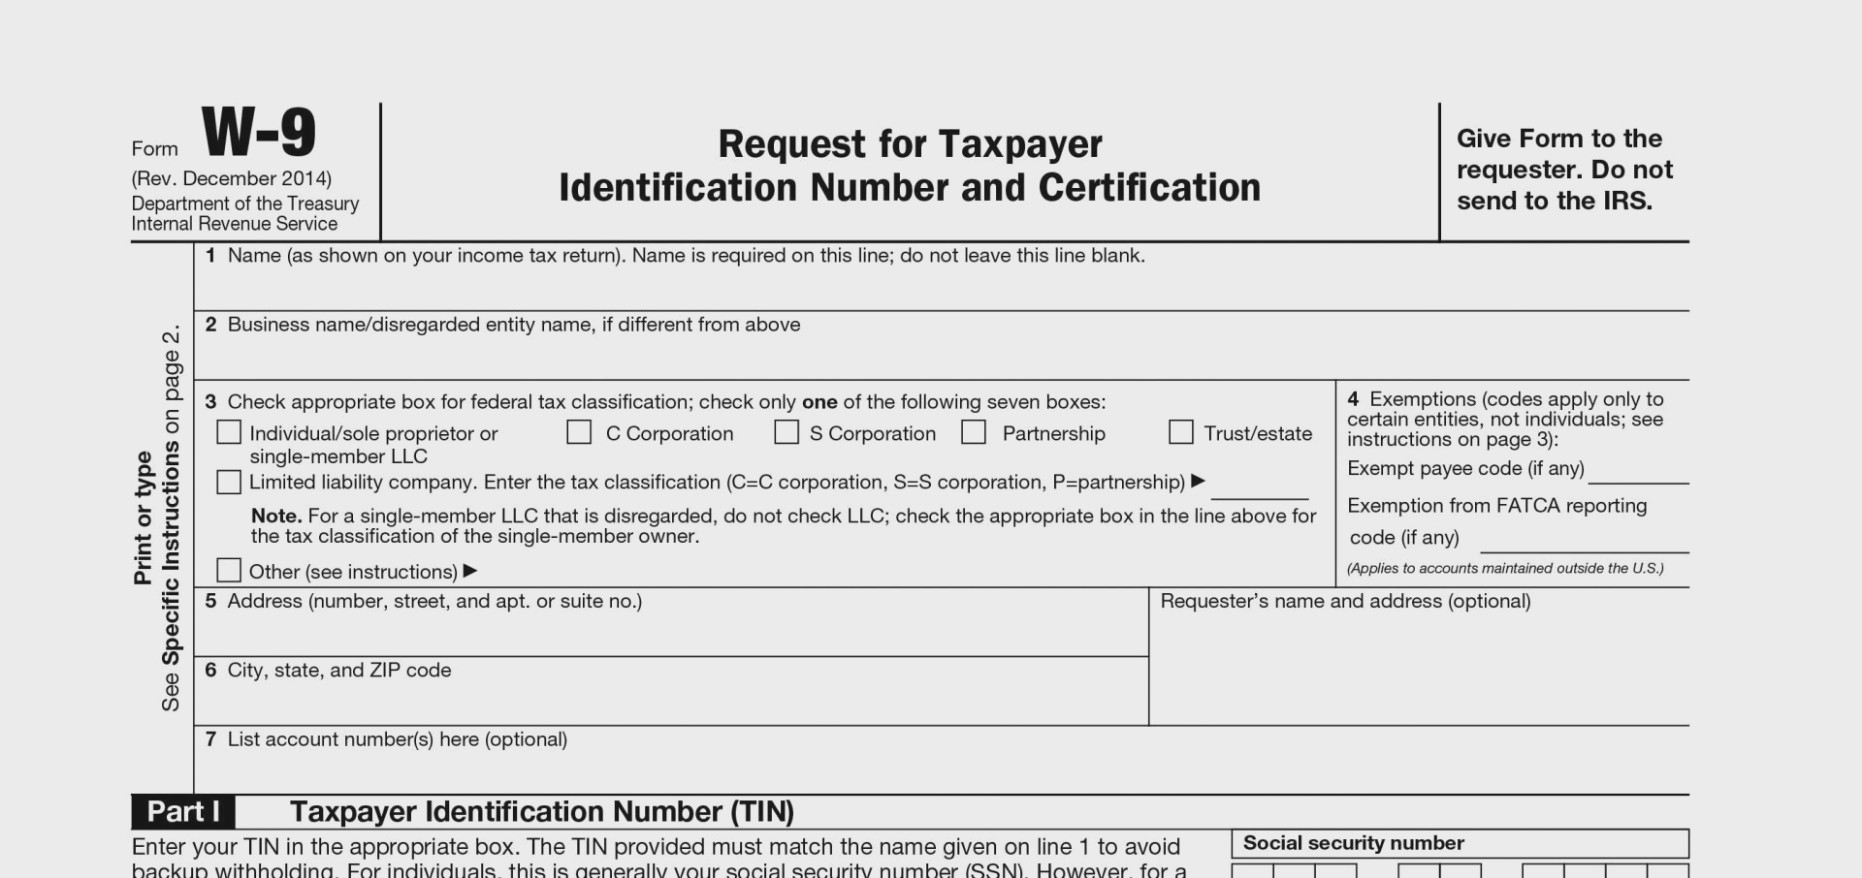 Irs Form W 9/tax Id Information Tax 9 Instructions Blank W11